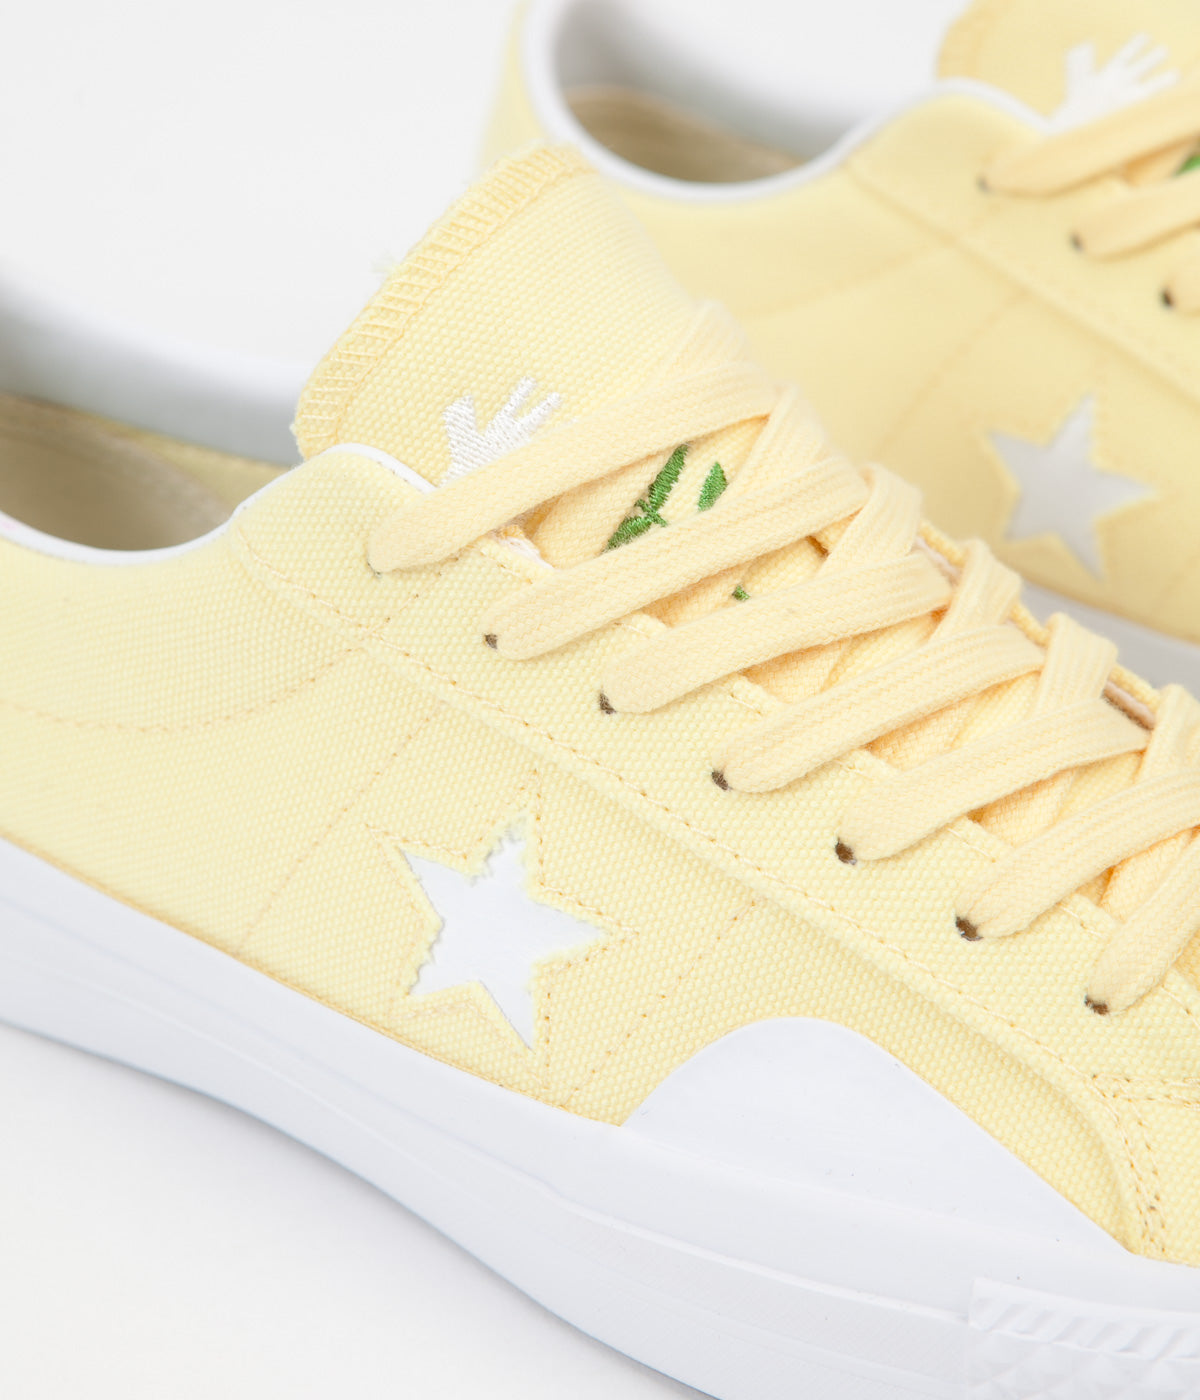 converse x chocolate. converse x chocolate one star pro ox shoes - yellow / white days ahead